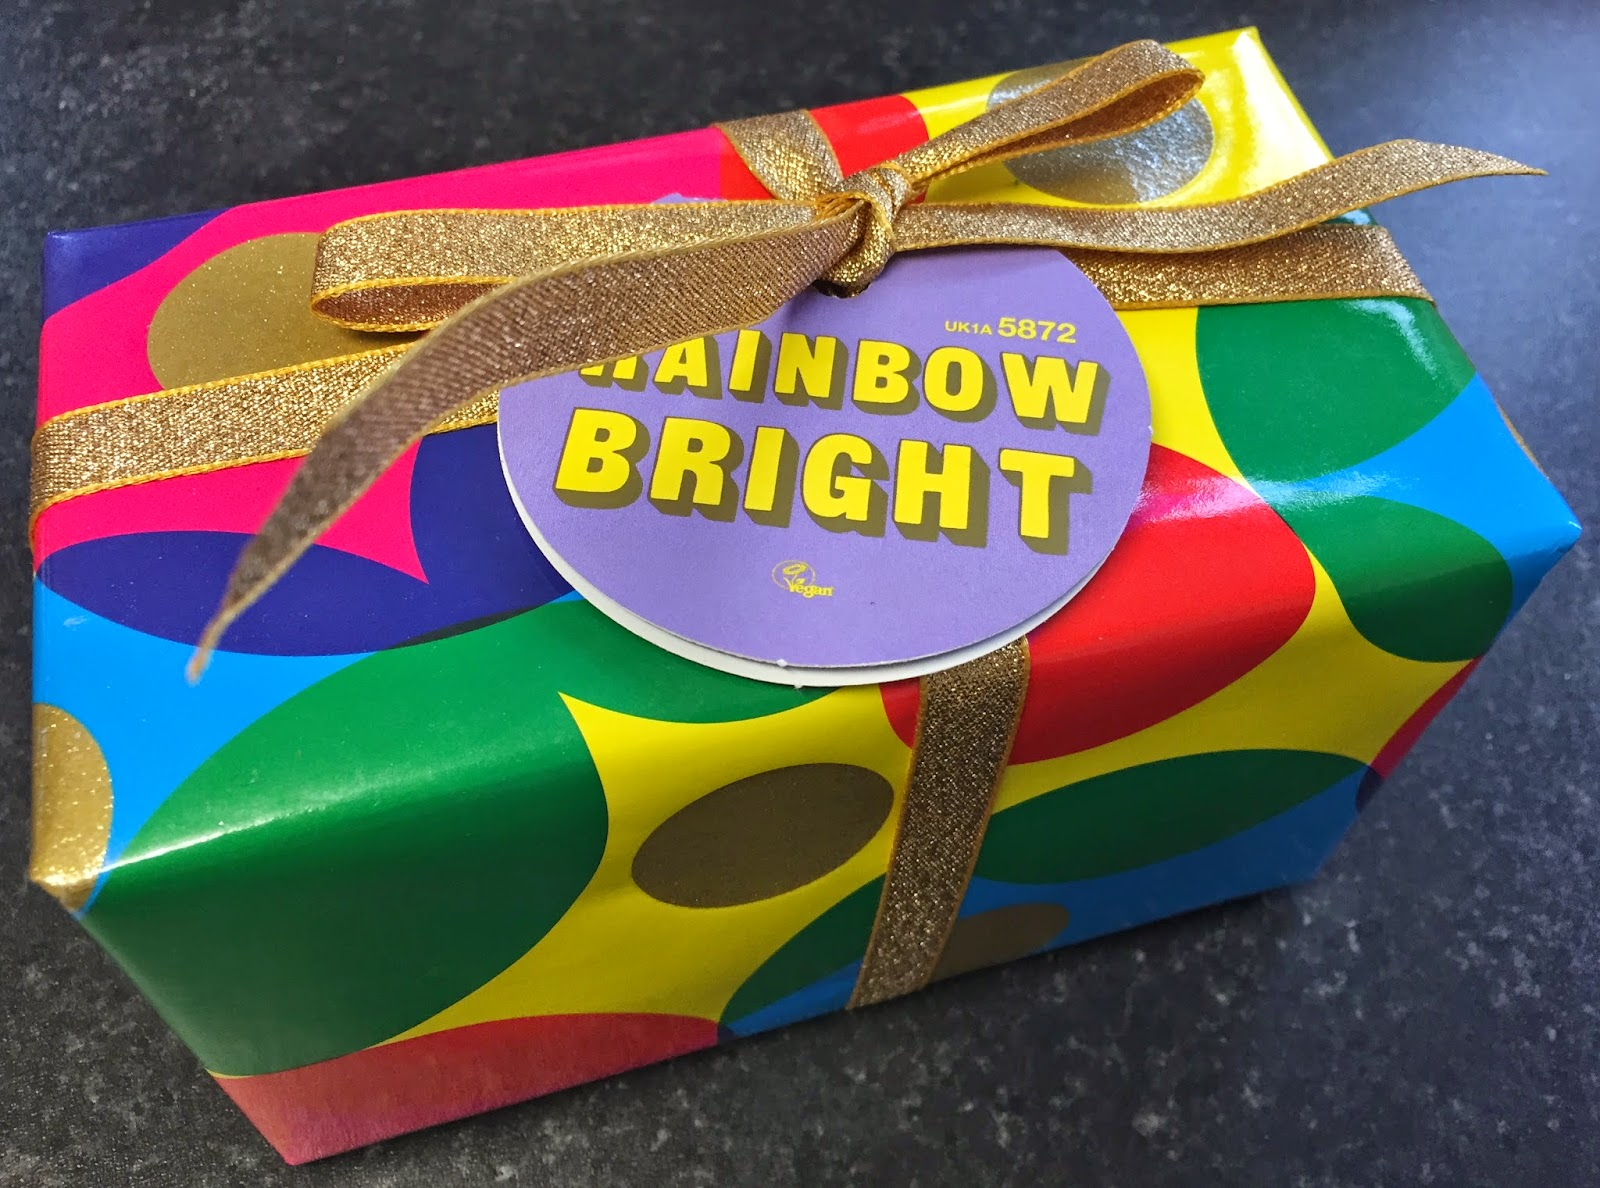 All things lush uk rainbow bright easter gift set 2015 when it comes to the seasonal ranges while to works out a few pence more than buying them individually its worth me purchasing a few gift sets so negle Image collections